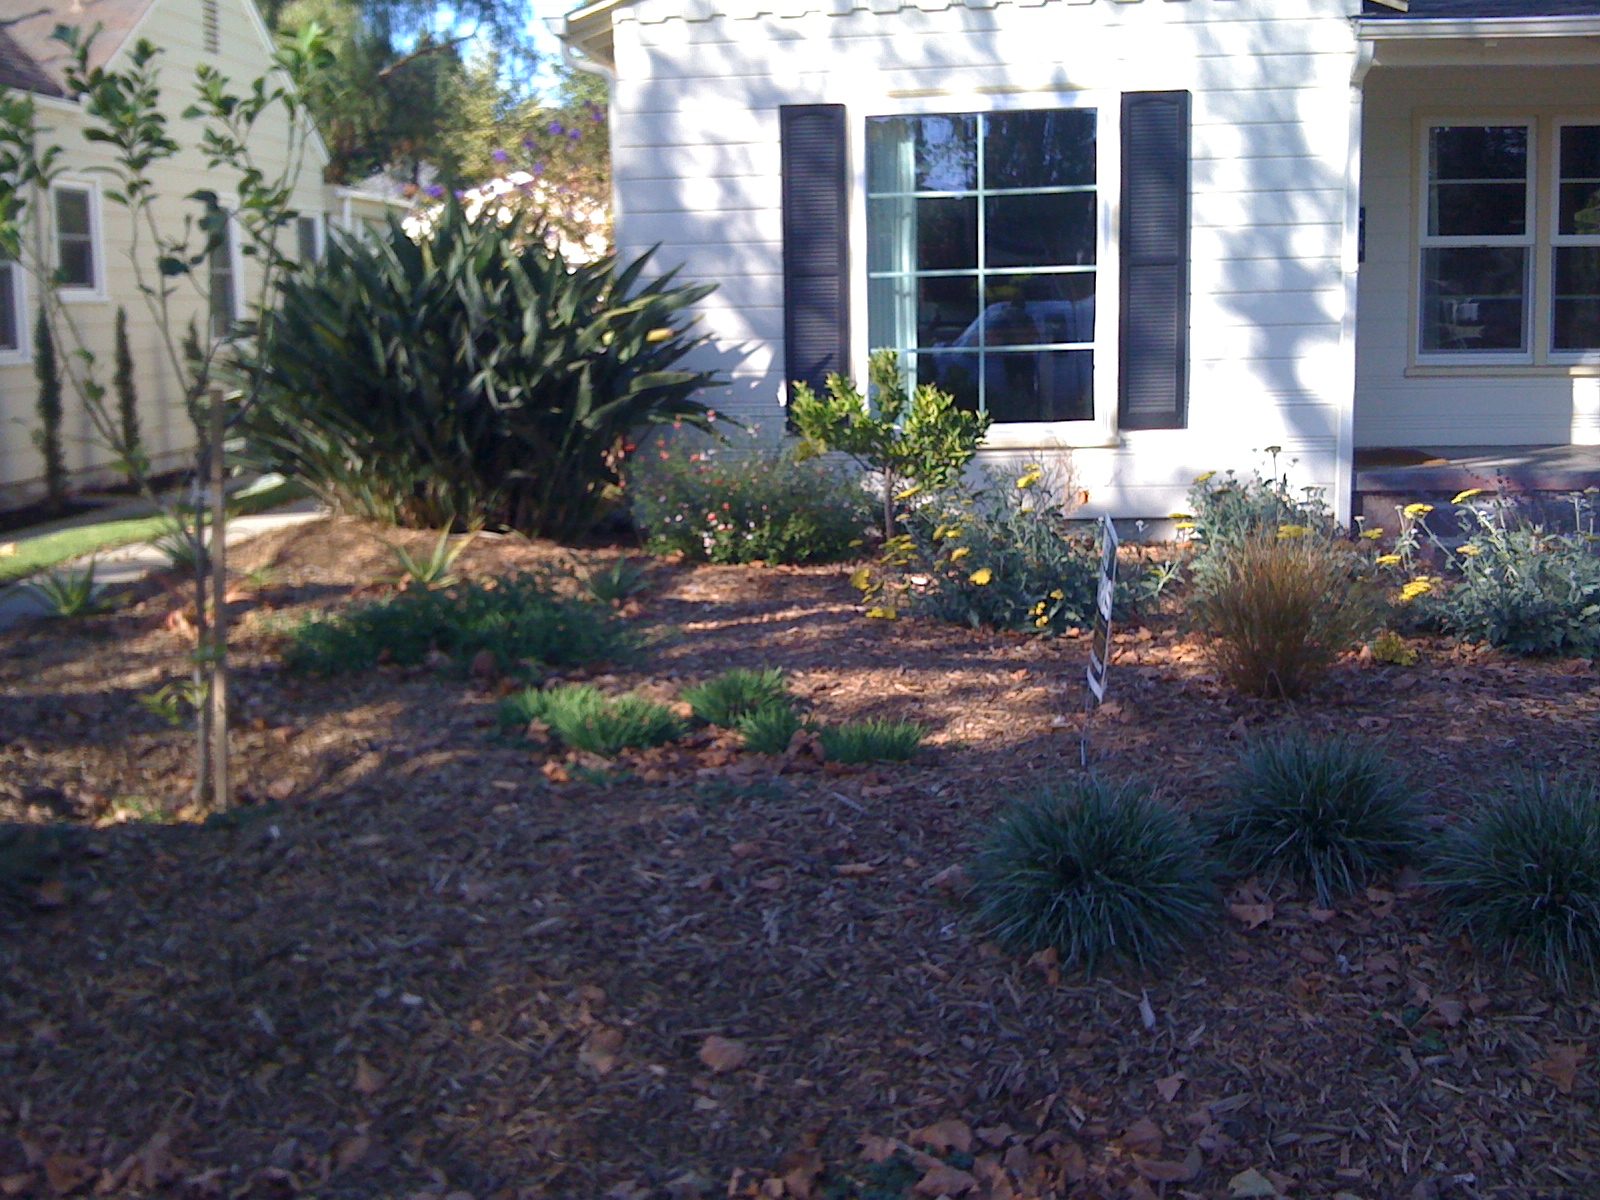 Water Wise Landscaping provided a drip irrigation retrofit for this Oakland garden renovation.